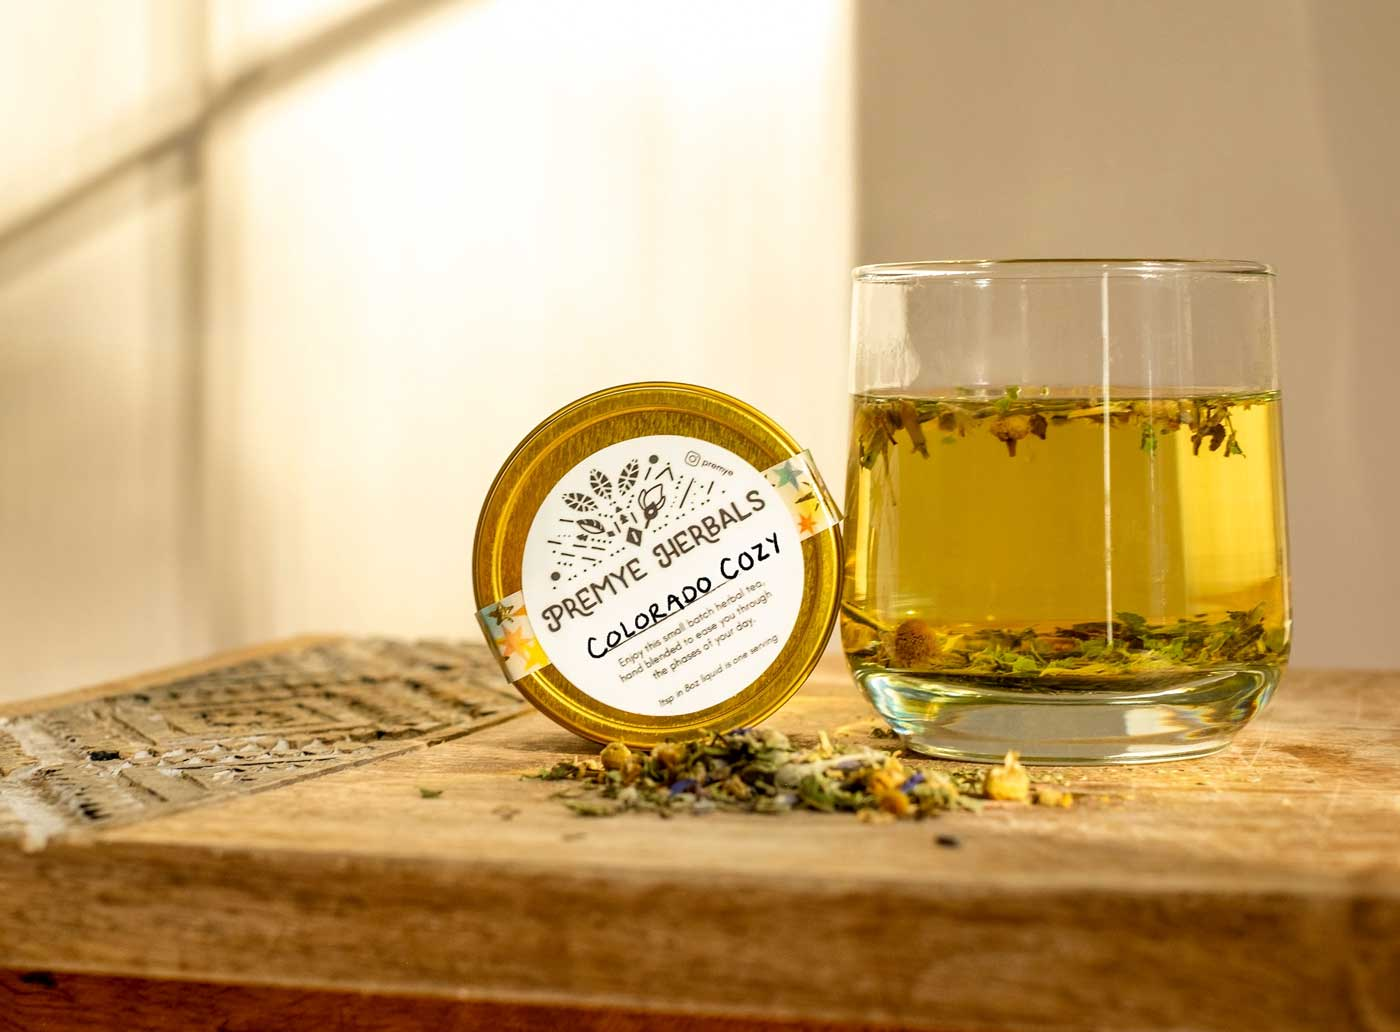 A tin of Colorado Cozy tea on its side with herbs scattered, and a glass with fresh herbal tea next to it.